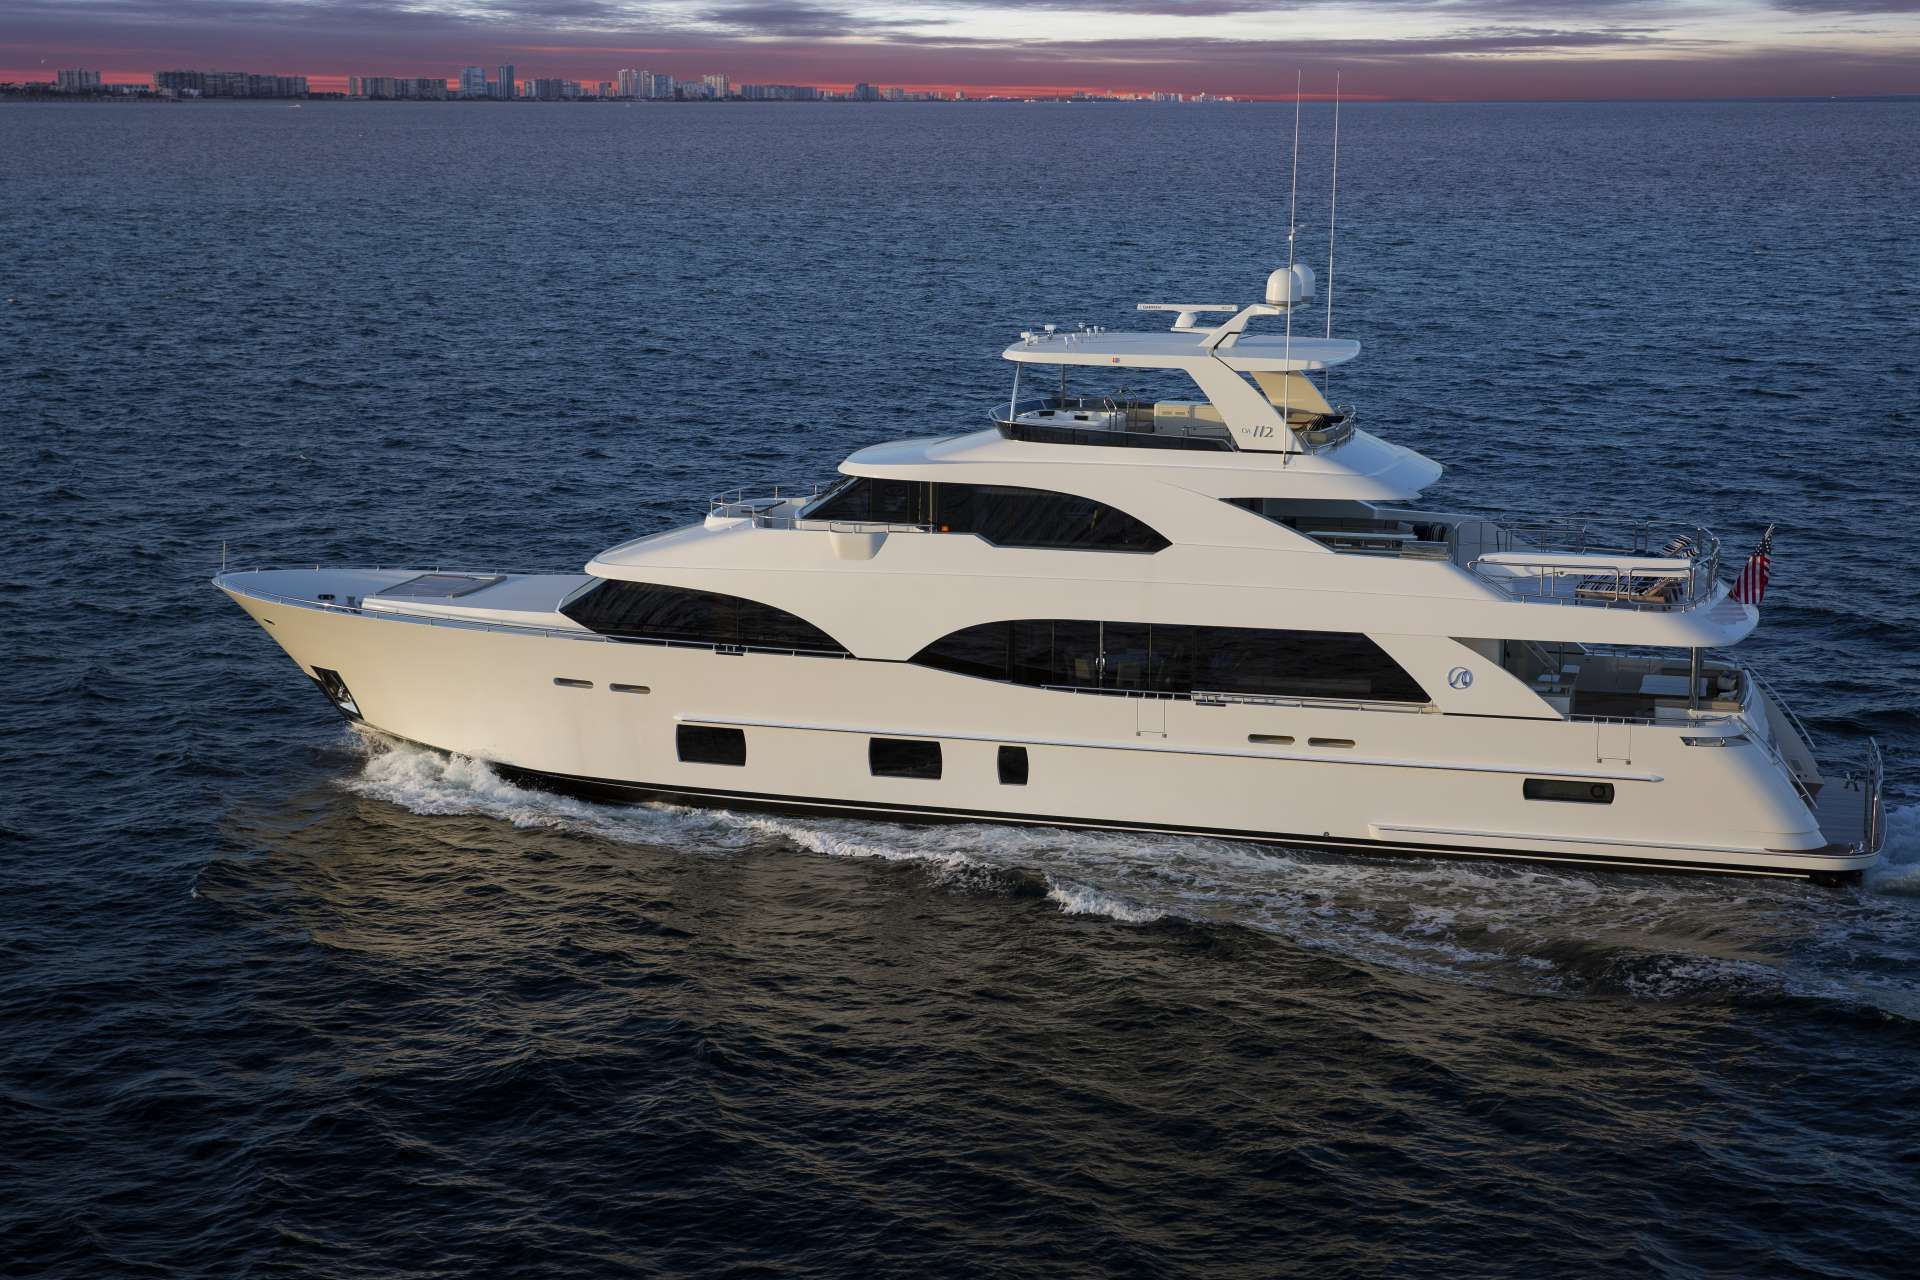 Profile shot of 112ft motor yacht SUGARAY at sea